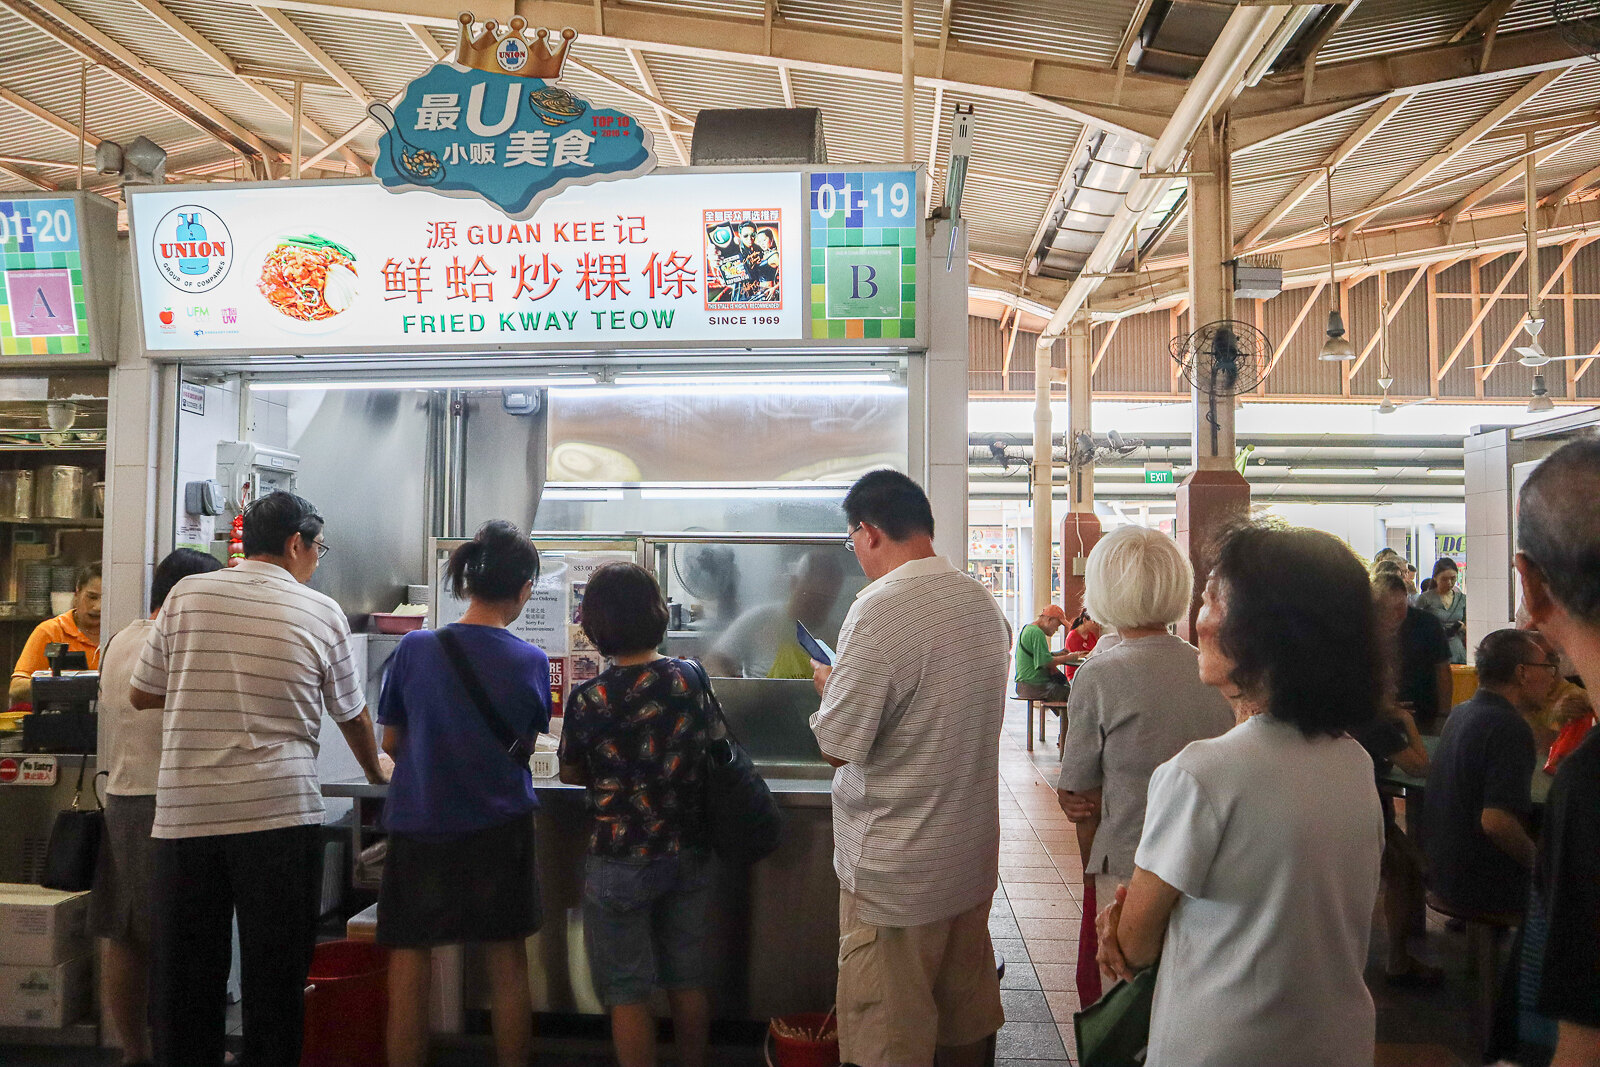 guan kee fried kway teow storefront 2